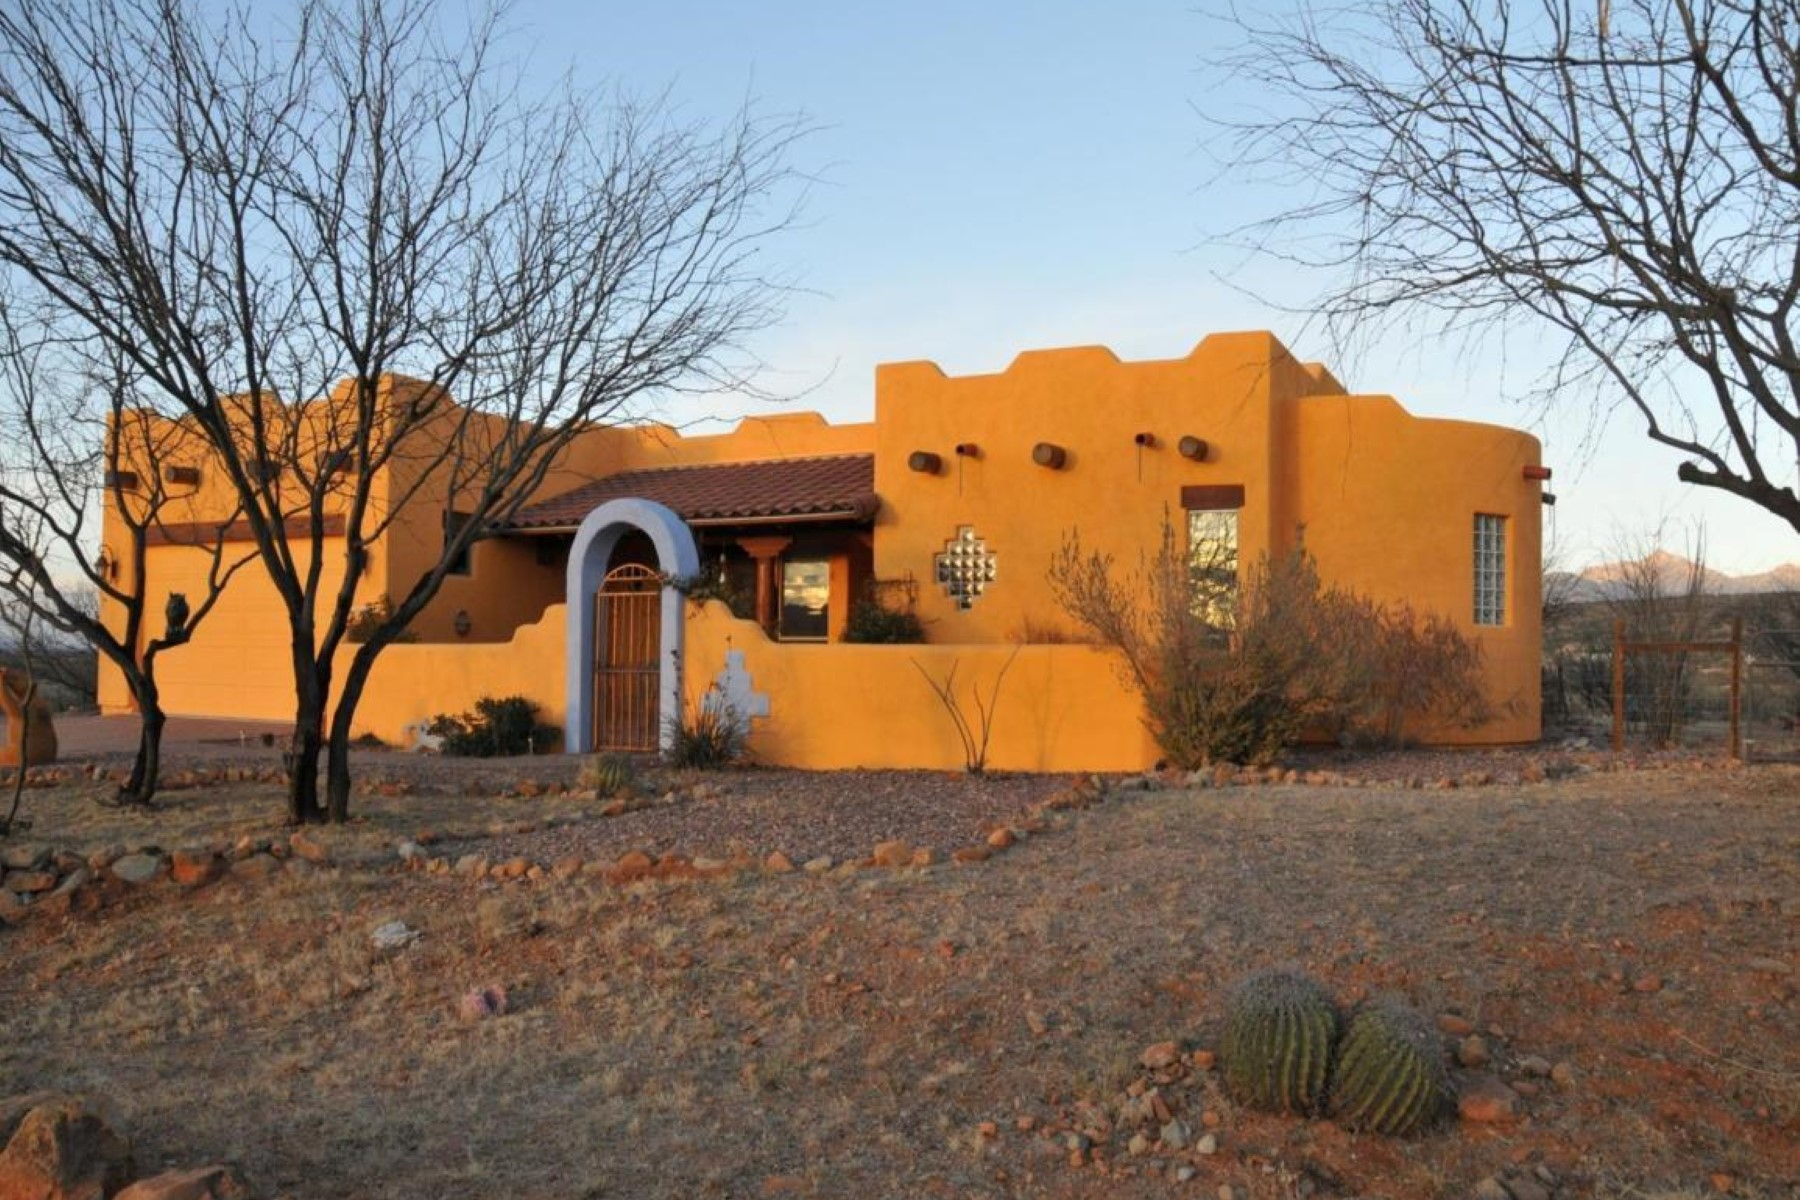 Single Family Home for Sale at Gorgeous custom personal home on a scenic 360 view lot 1677 Calle Cabo Rio Rico, Arizona, 85648 United States